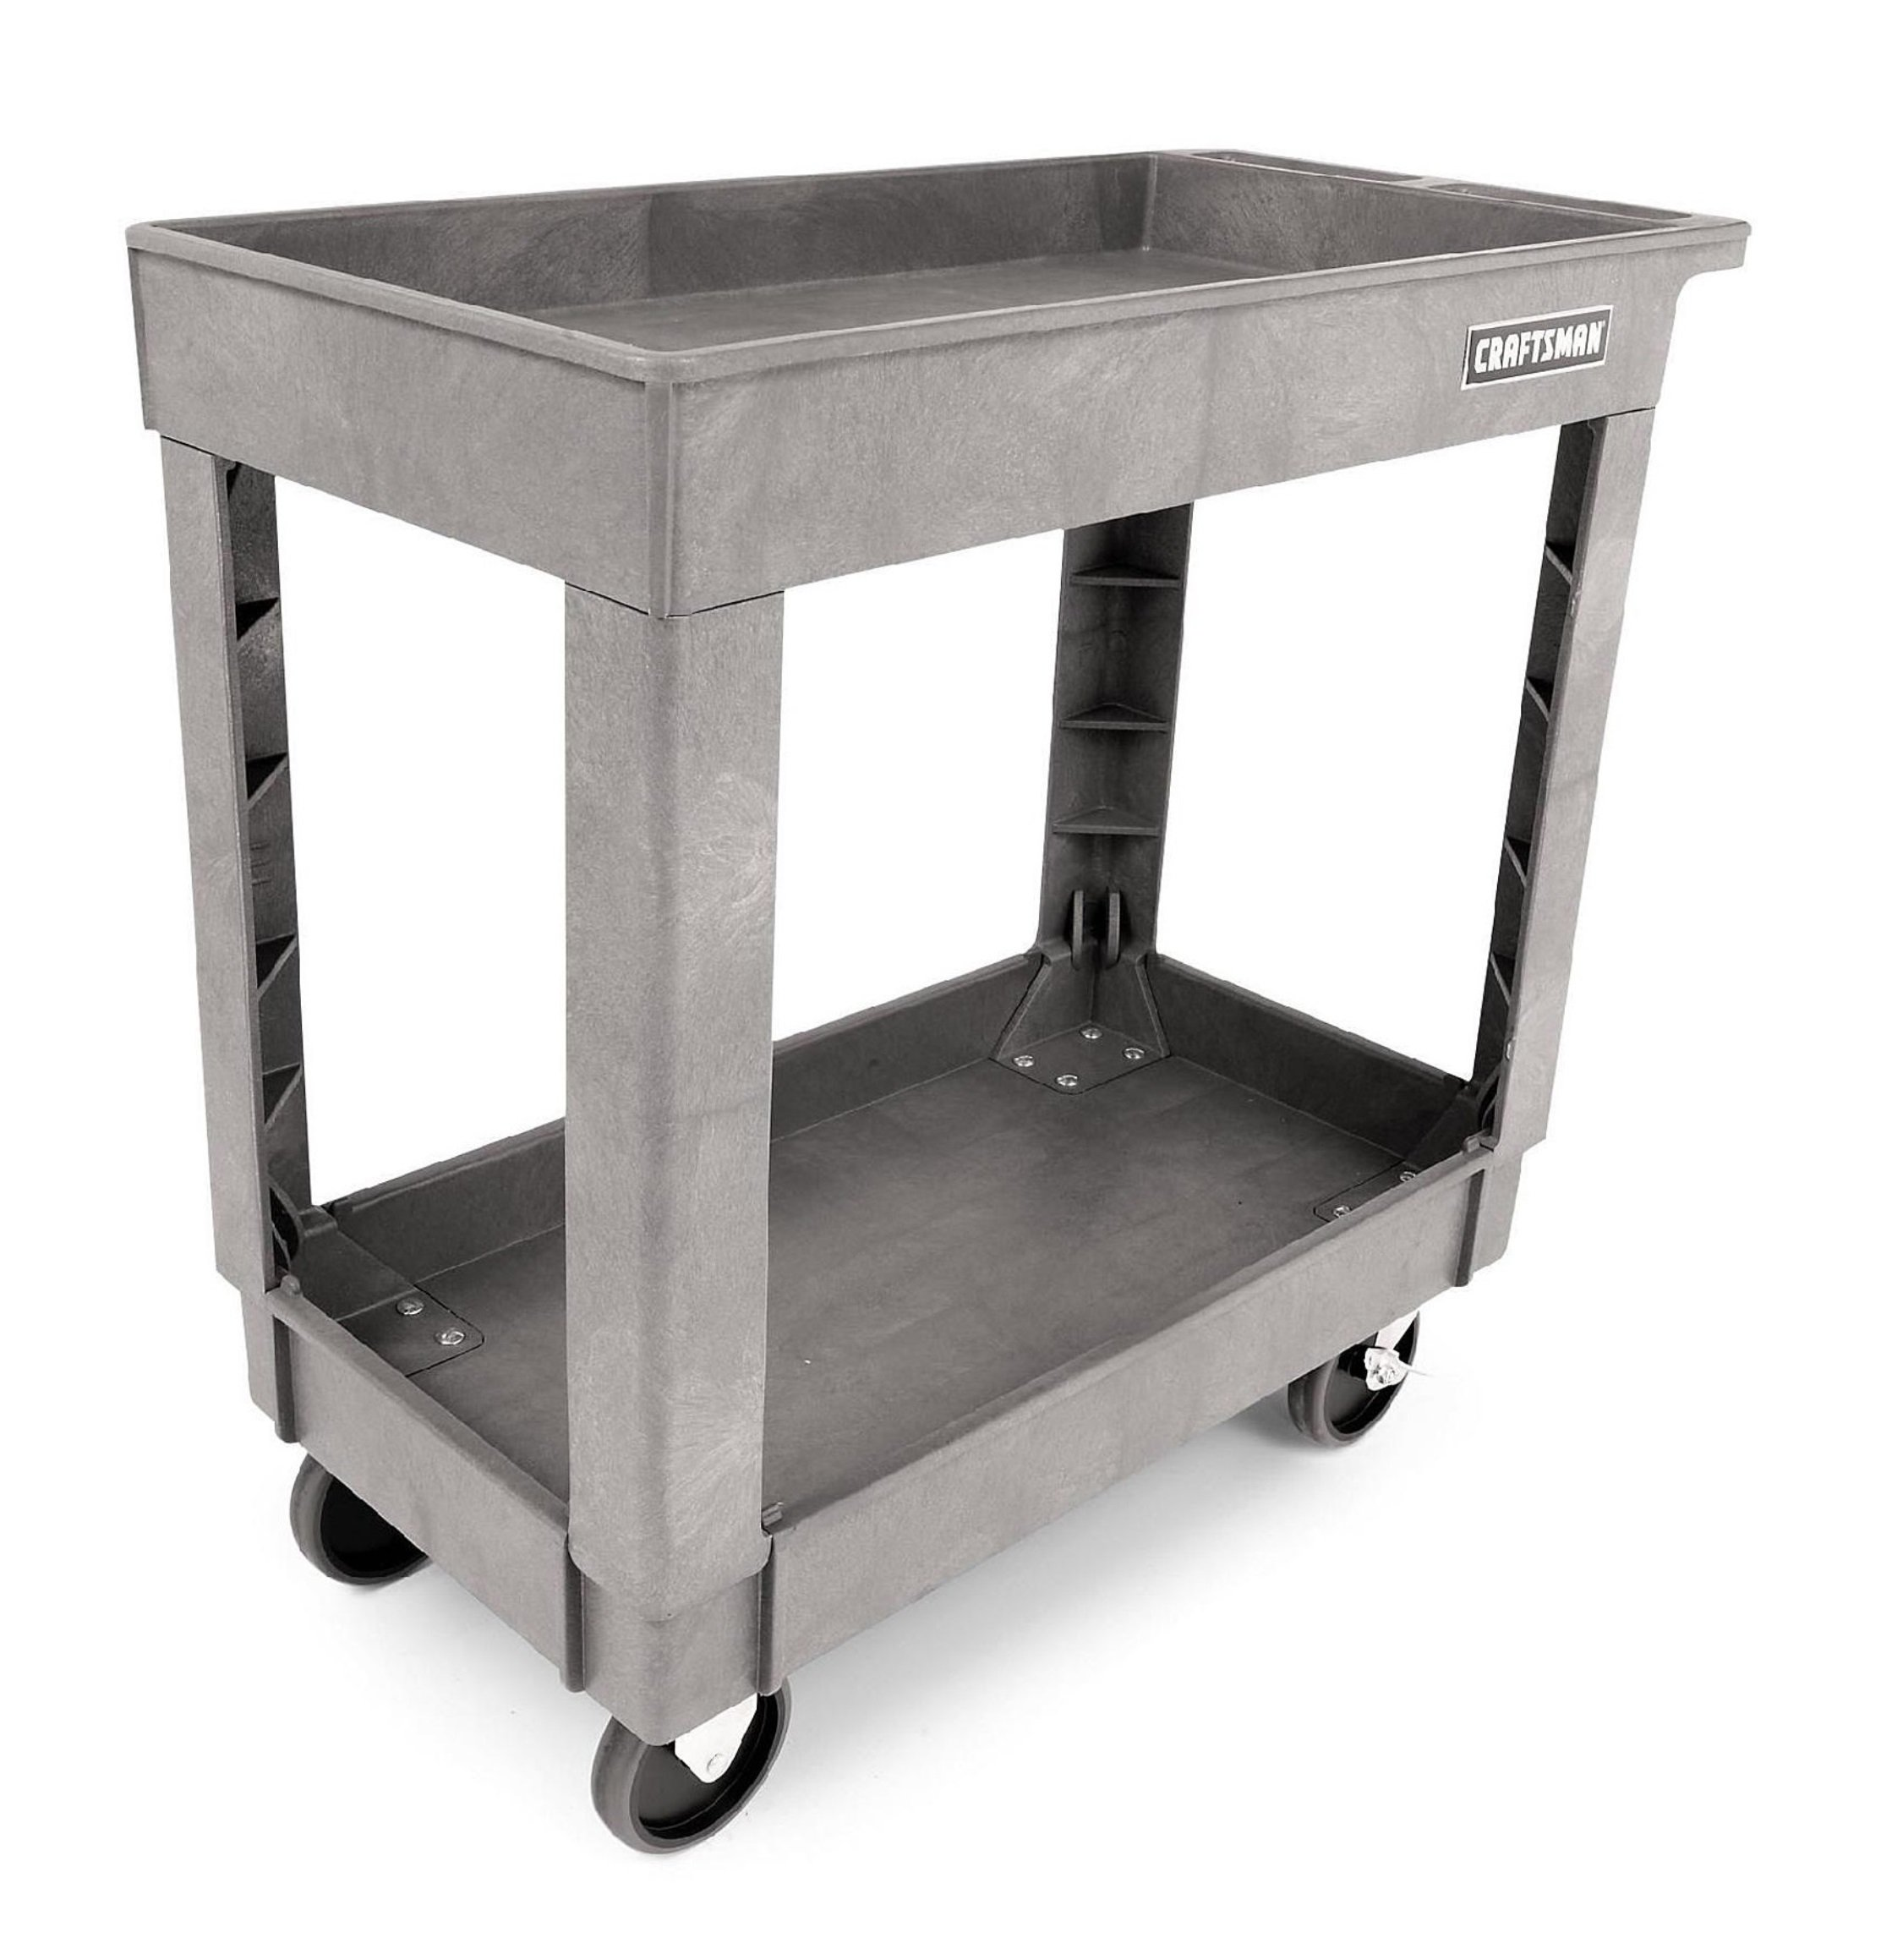 Work Bench Mobile Tool Cart by MM (Image #2)